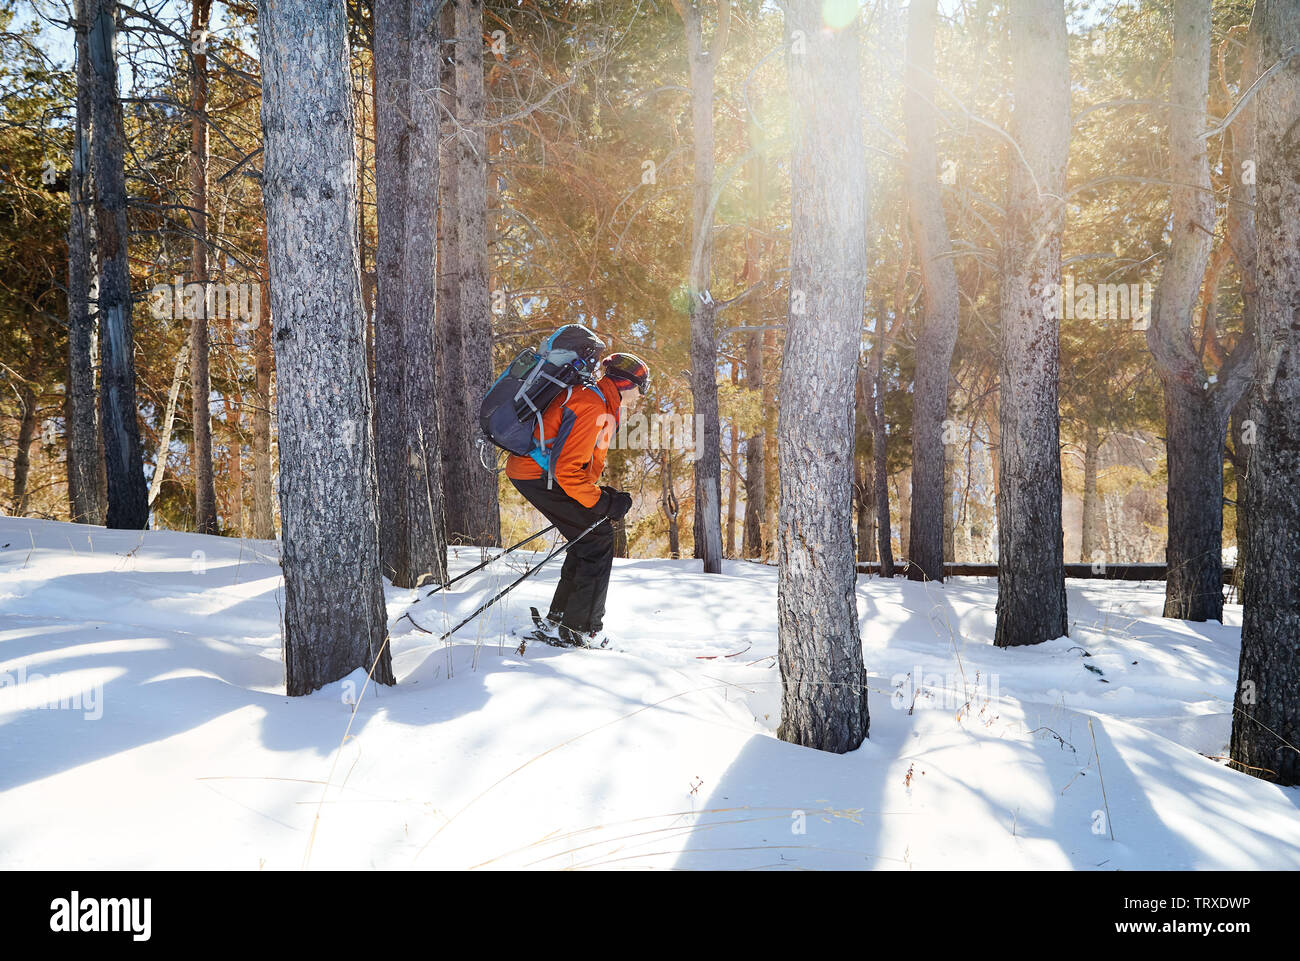 Man in orange jacket skiing on fresh powder snow at winter forest Stock Photo